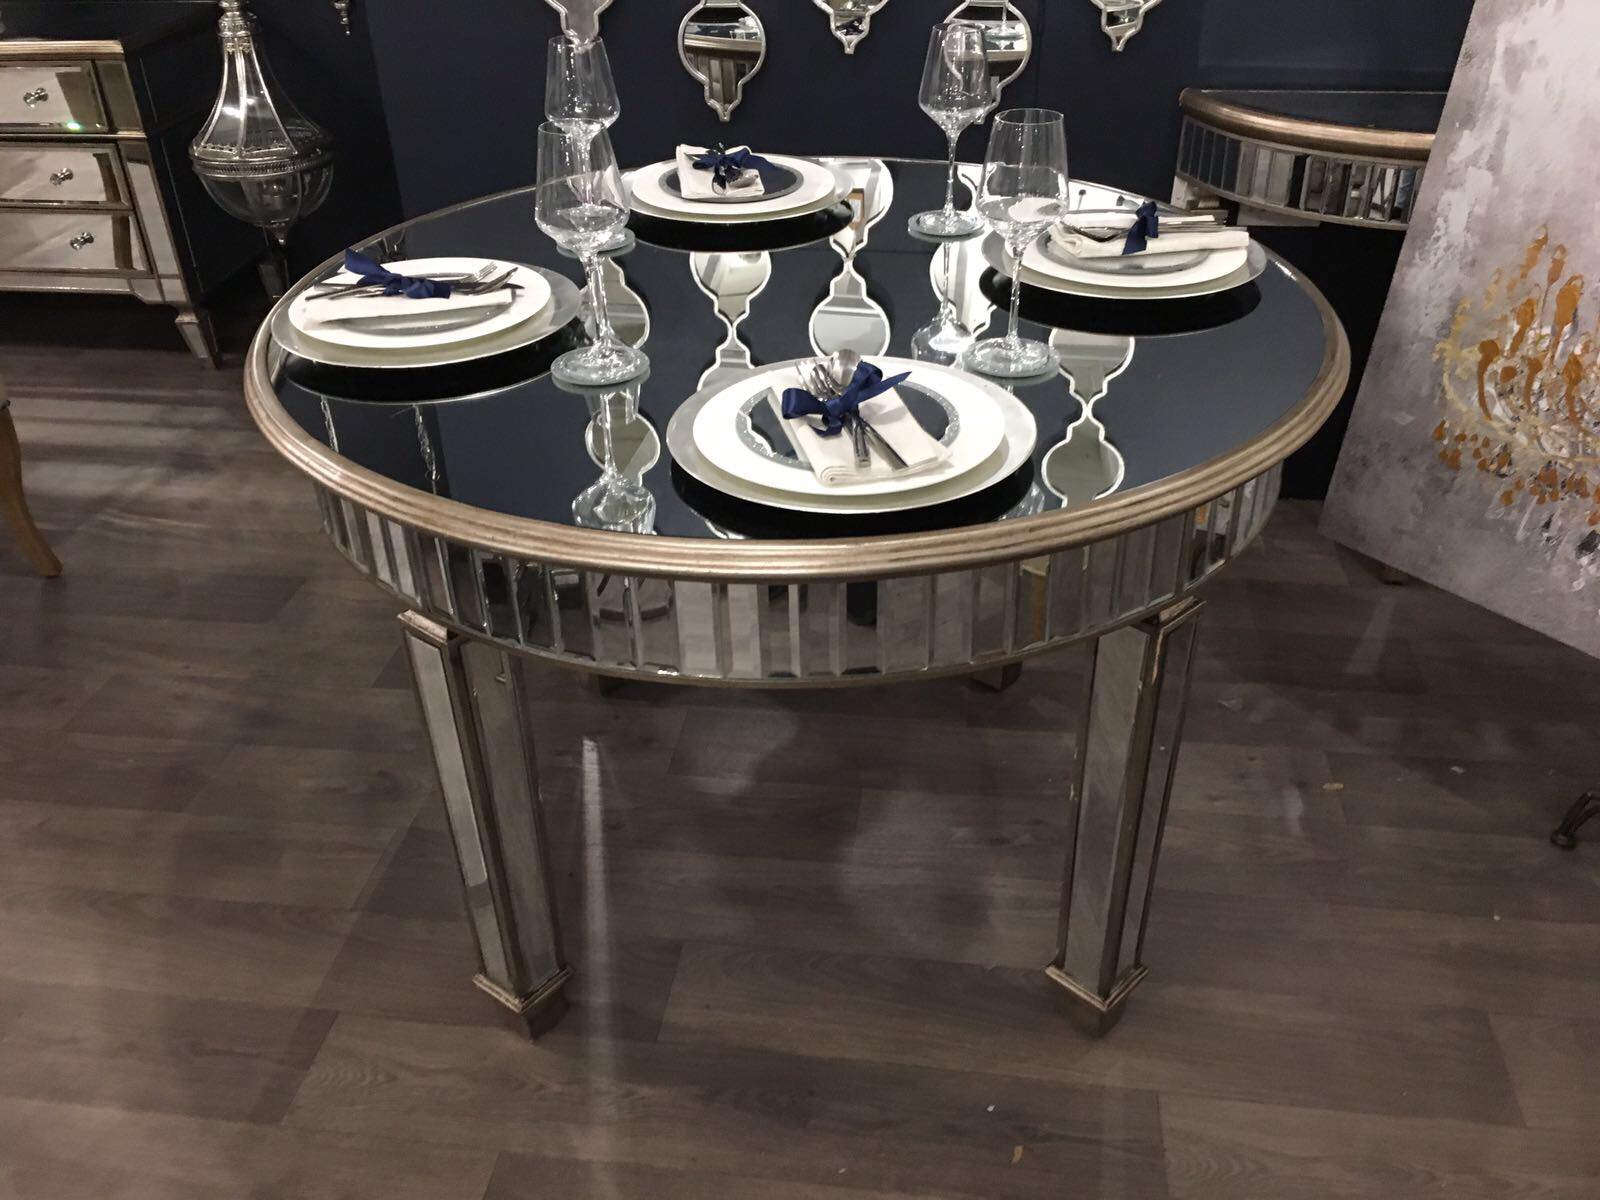 Antique Mirrored Grand Mirrored Dining Table - Mirrored furniture - Sparkle Diamond - House of Sparkles